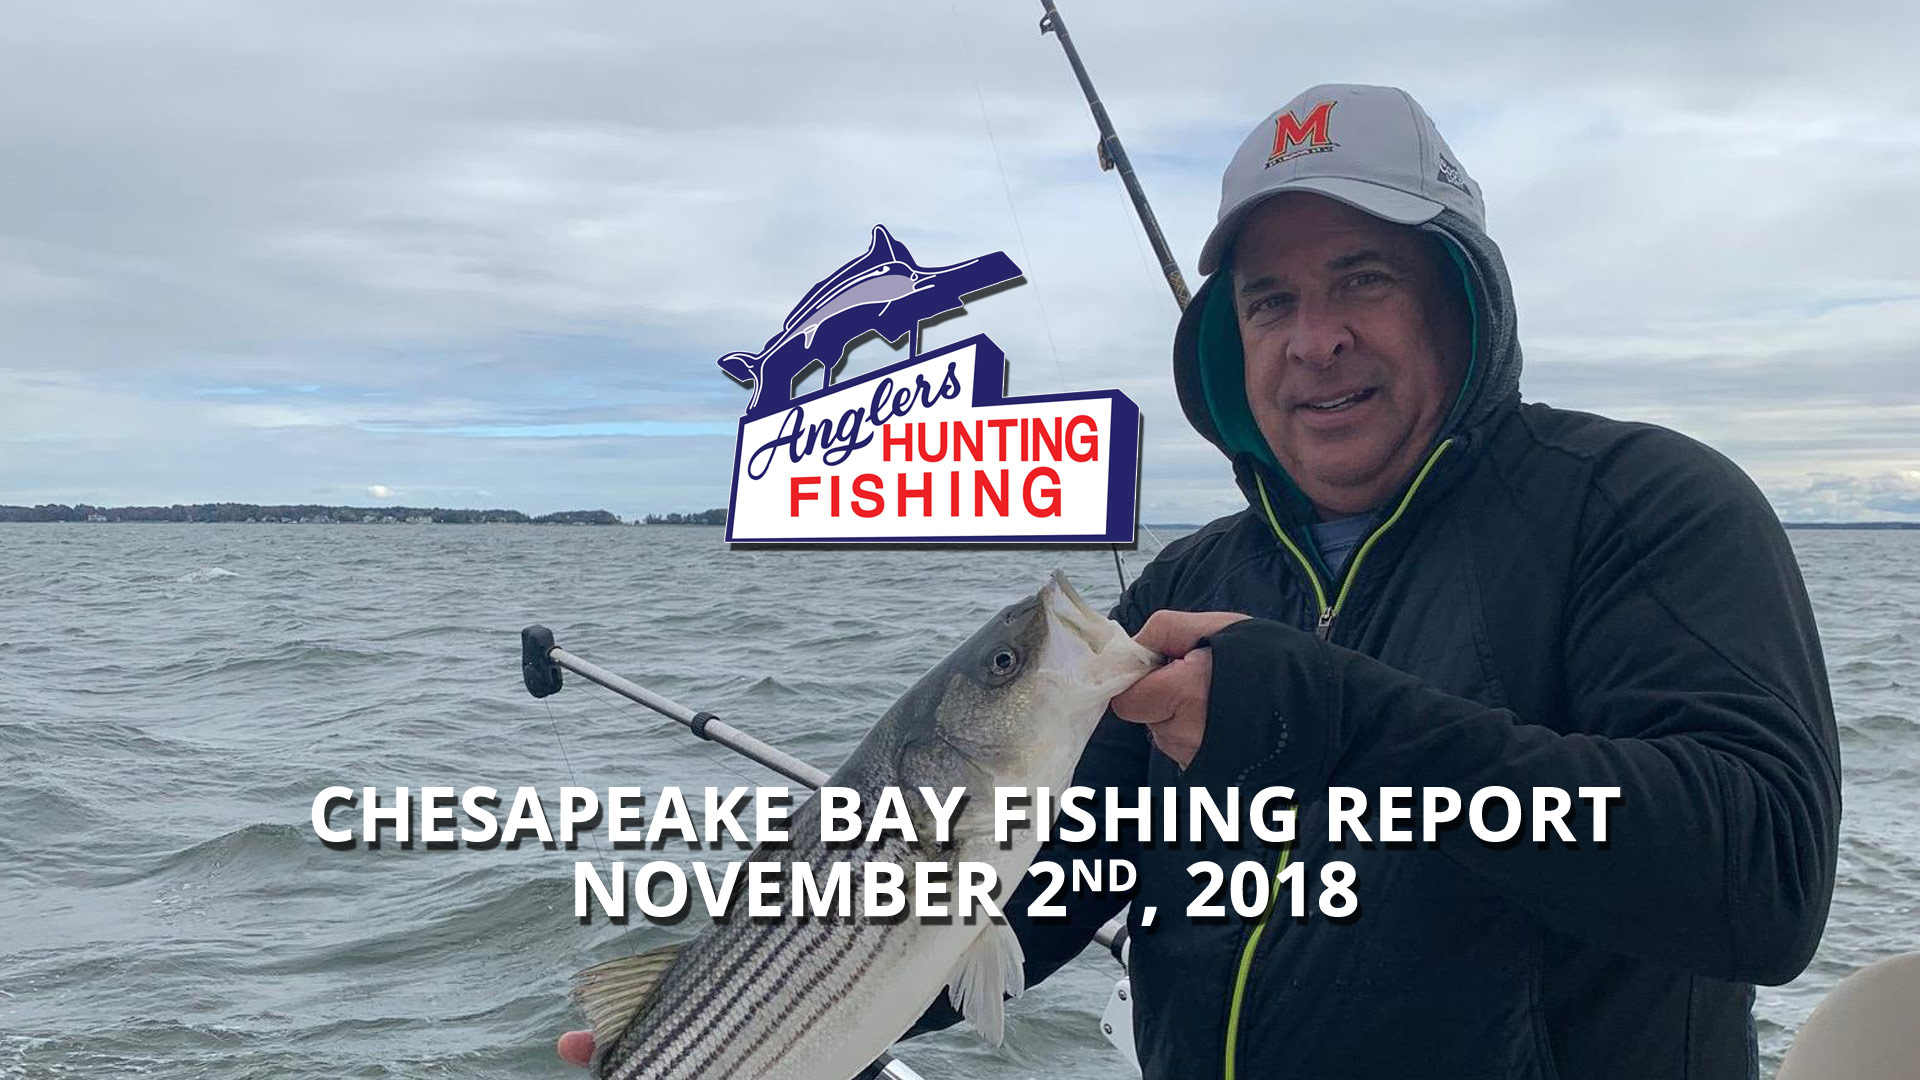 Chesapeake Bay Fishing Report - November 2nd, 2018